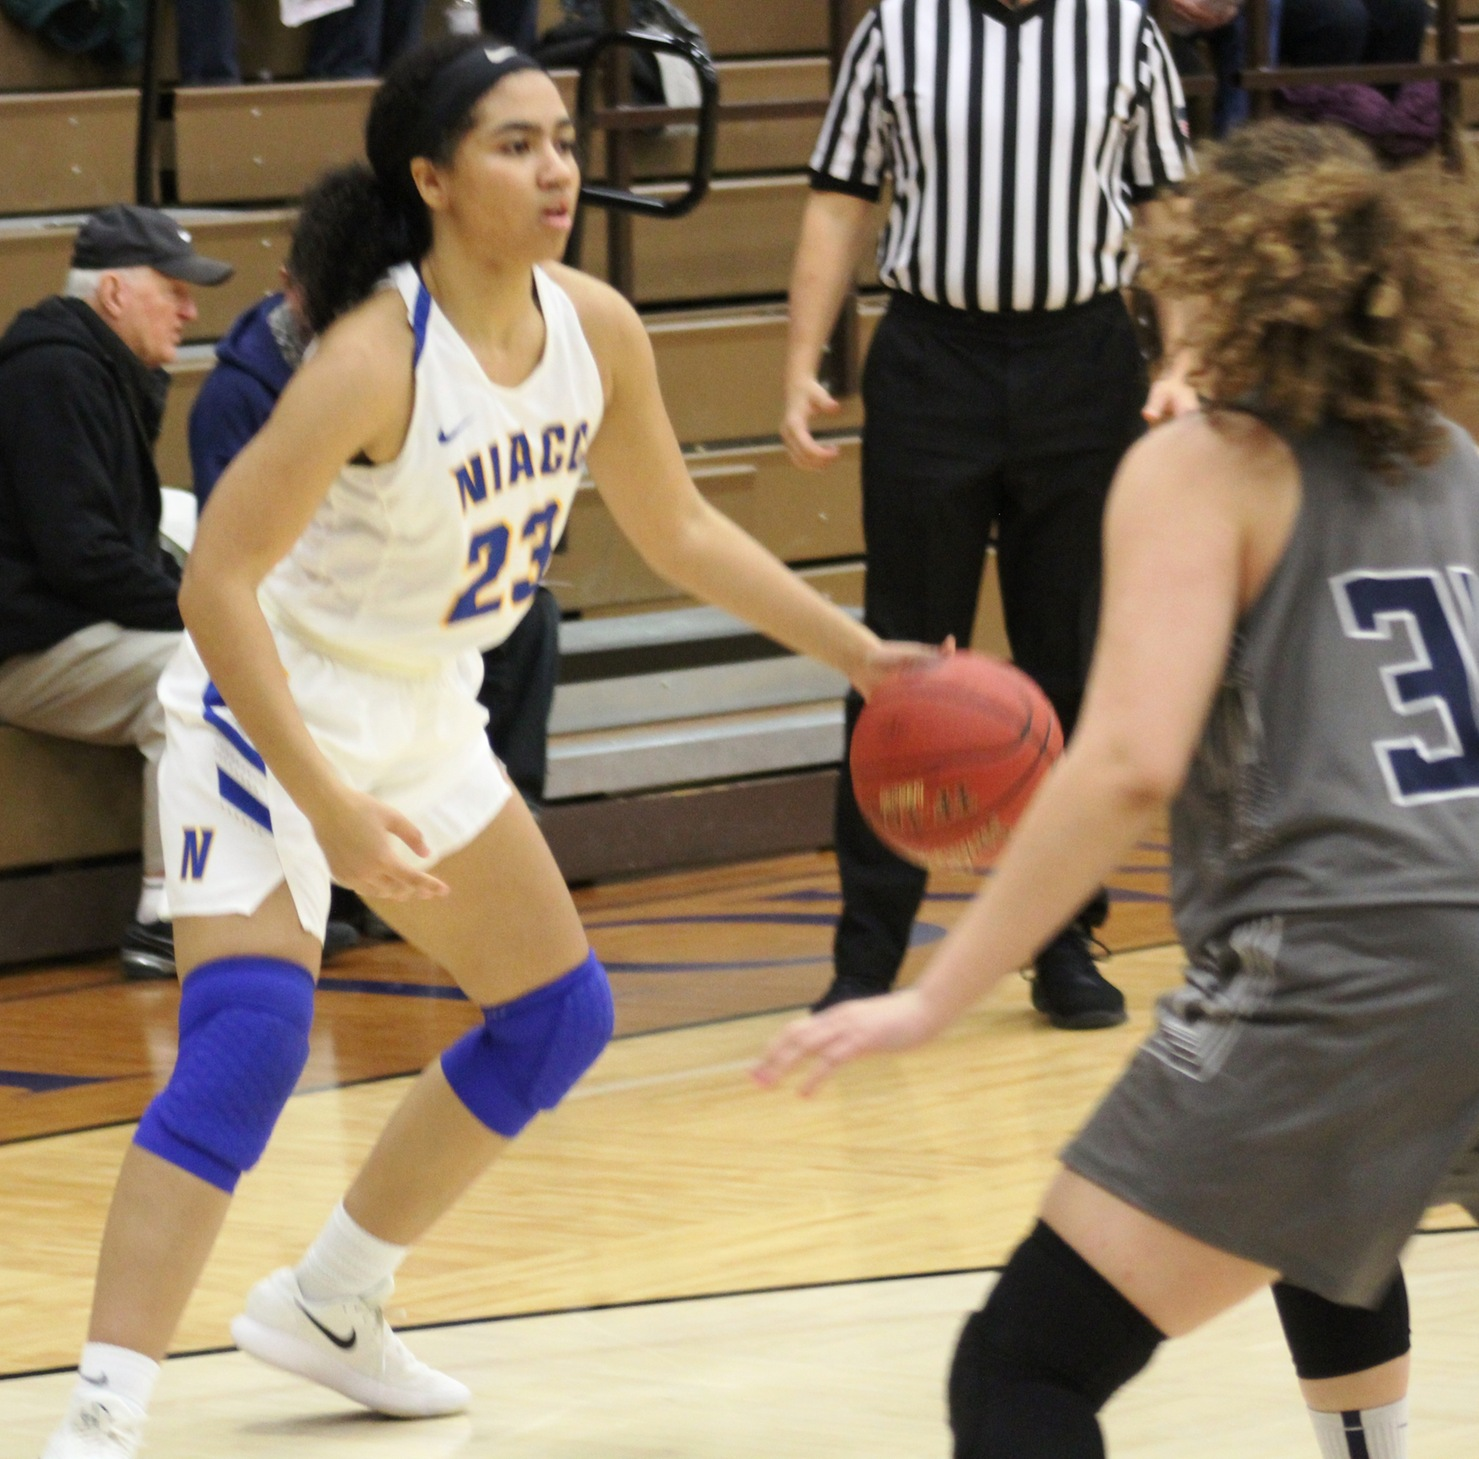 NIACC's Tayha Campeball is lone returning sophomore on the 2018-19 team.